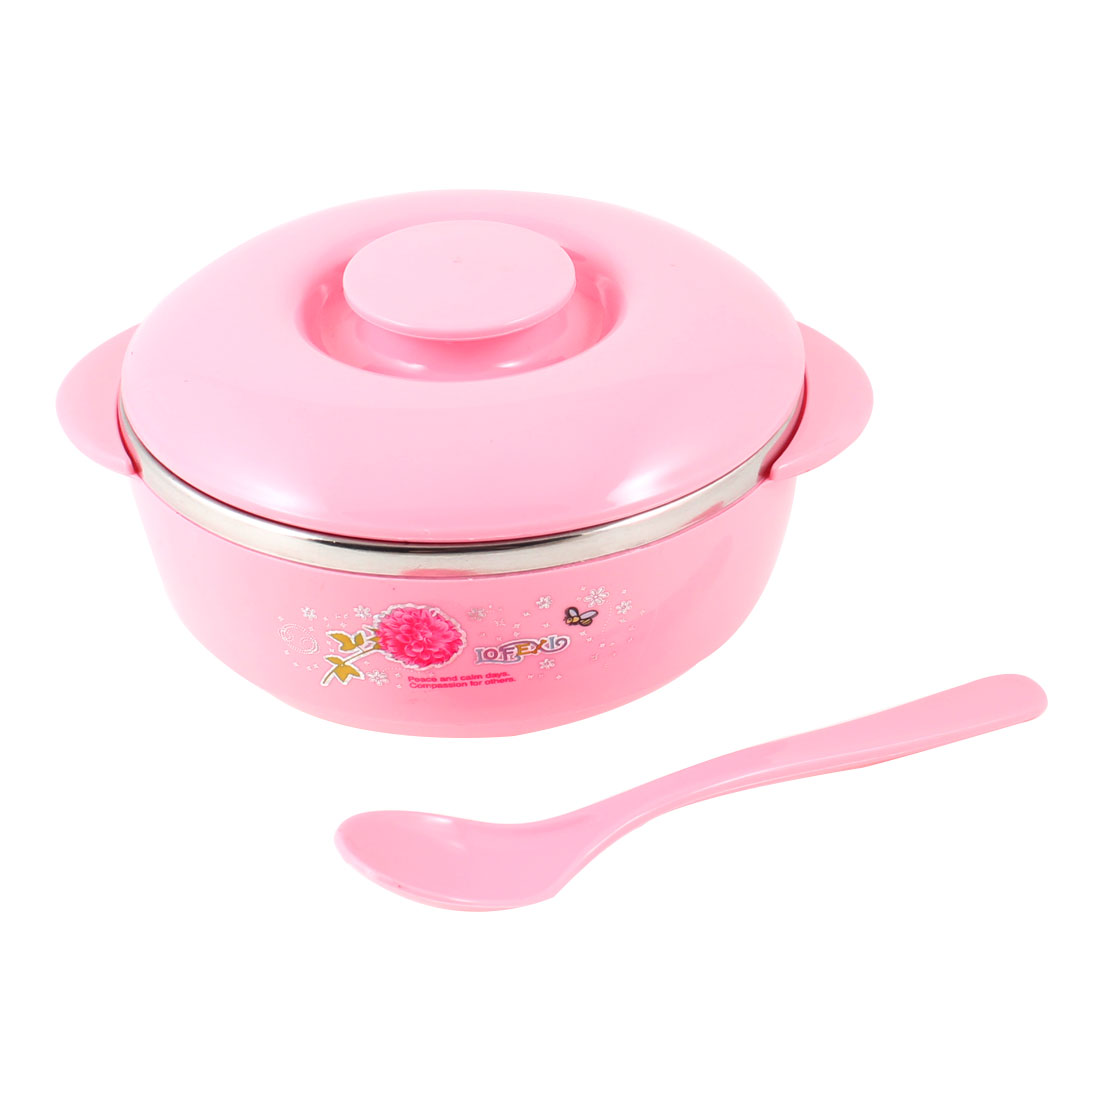 """Family Pink Silver Tone 4.9"""" Dia Cereal Dessert Dinner Rice Bowl w Lid"""